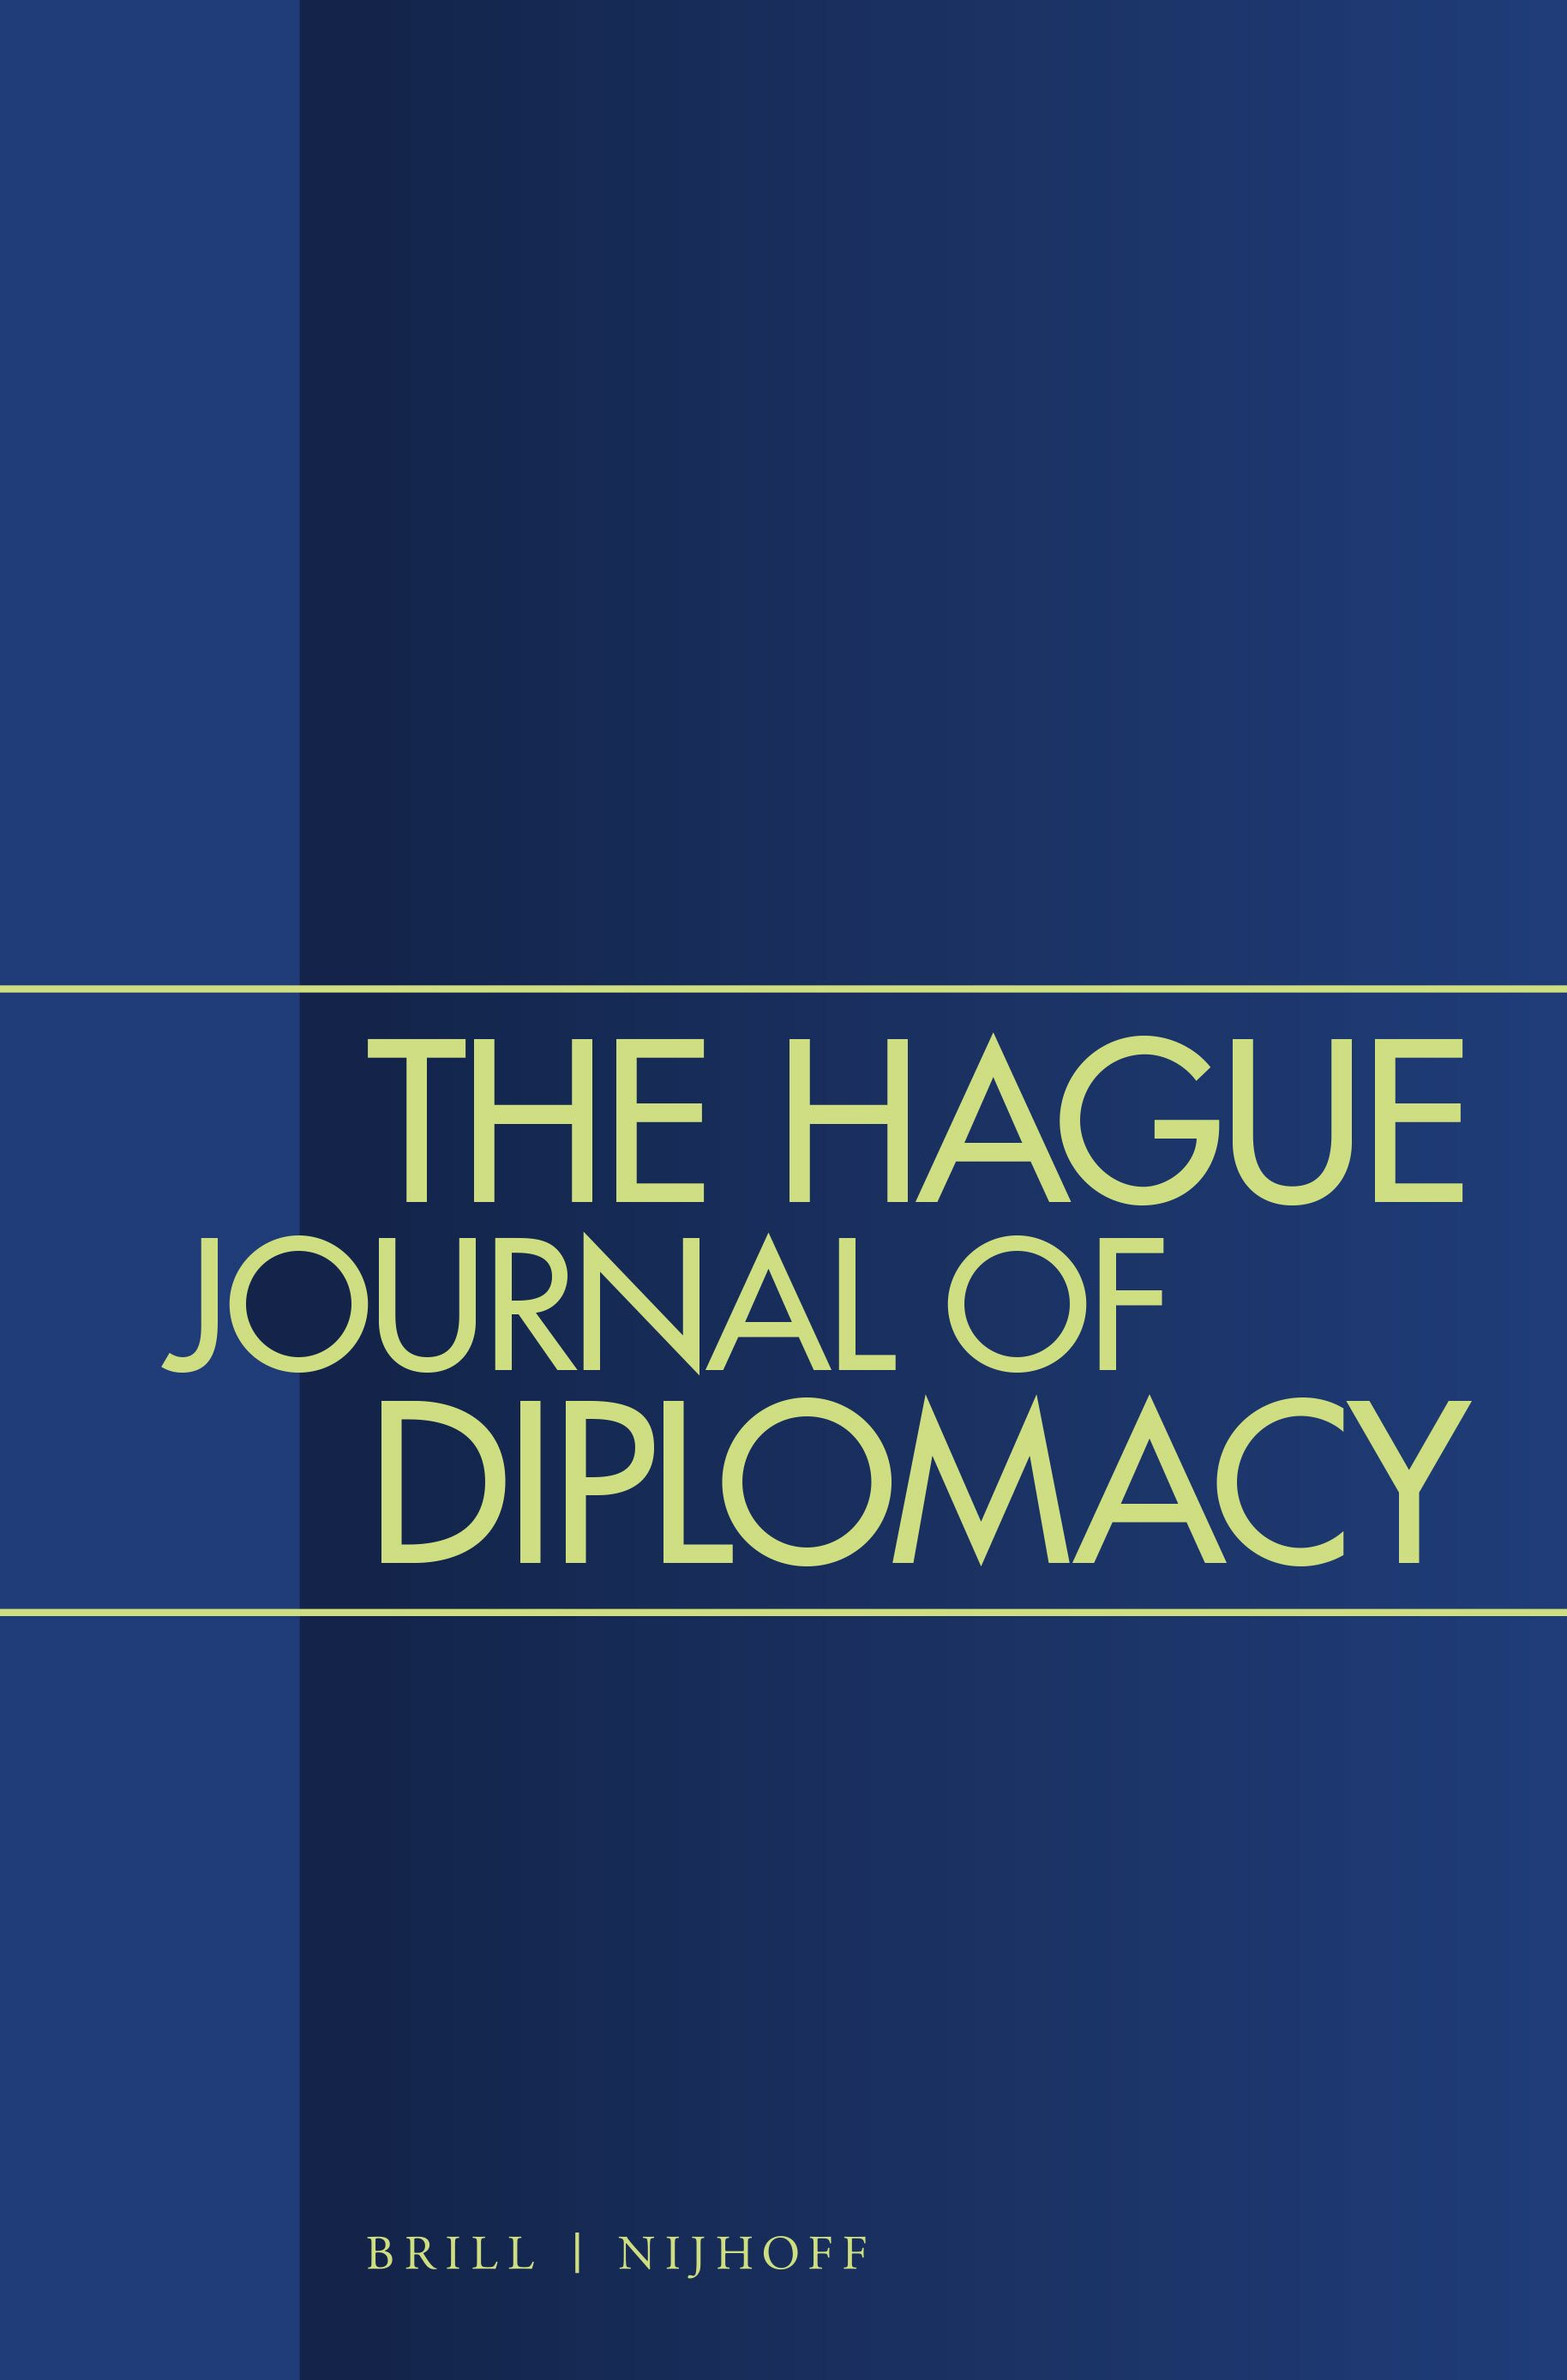 The Hague Journal Of Diplomacy Brill